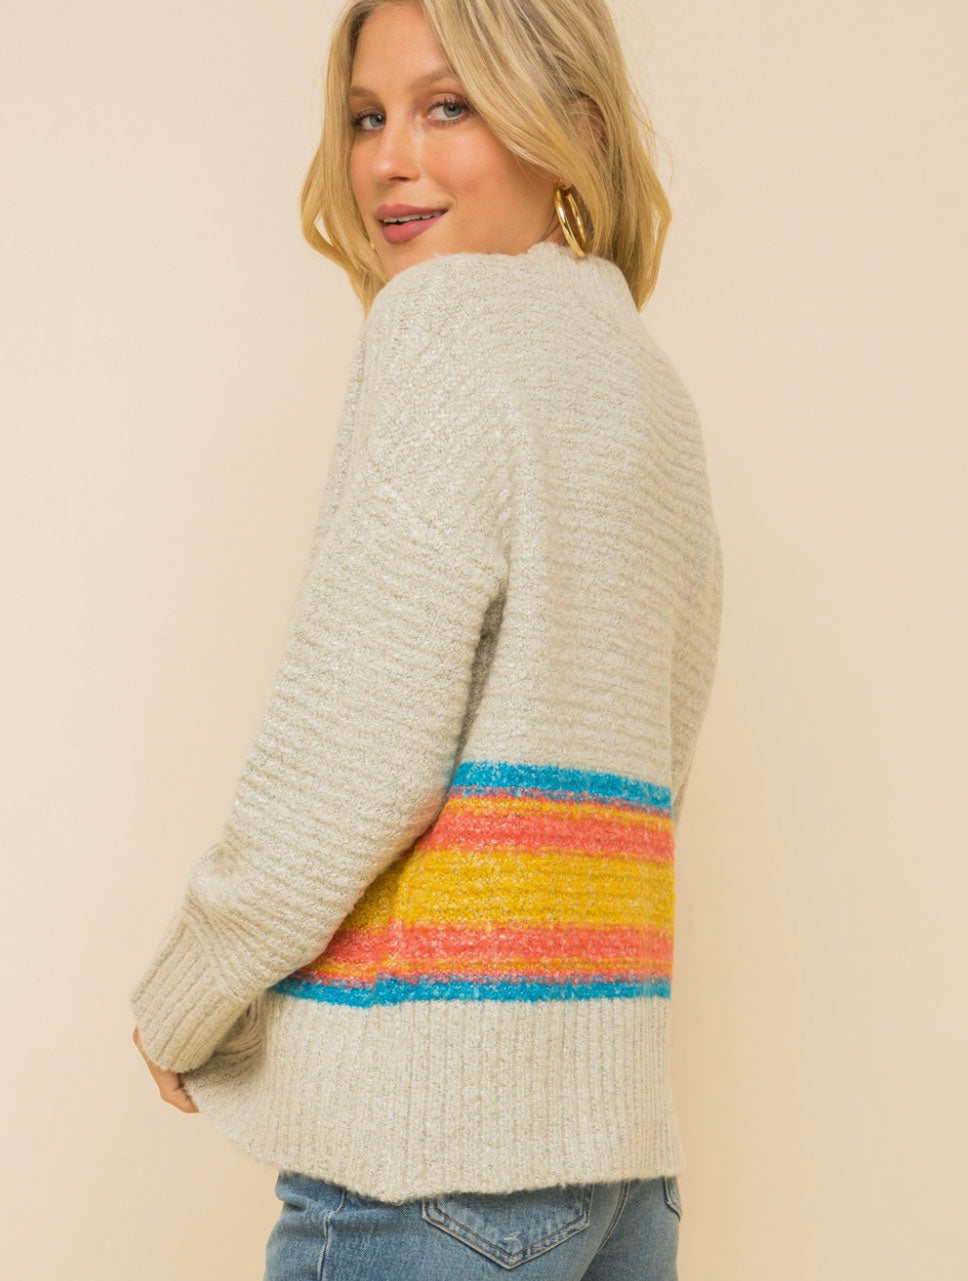 Hem & Thread Striped Mixed Sweater in Grey/Multi